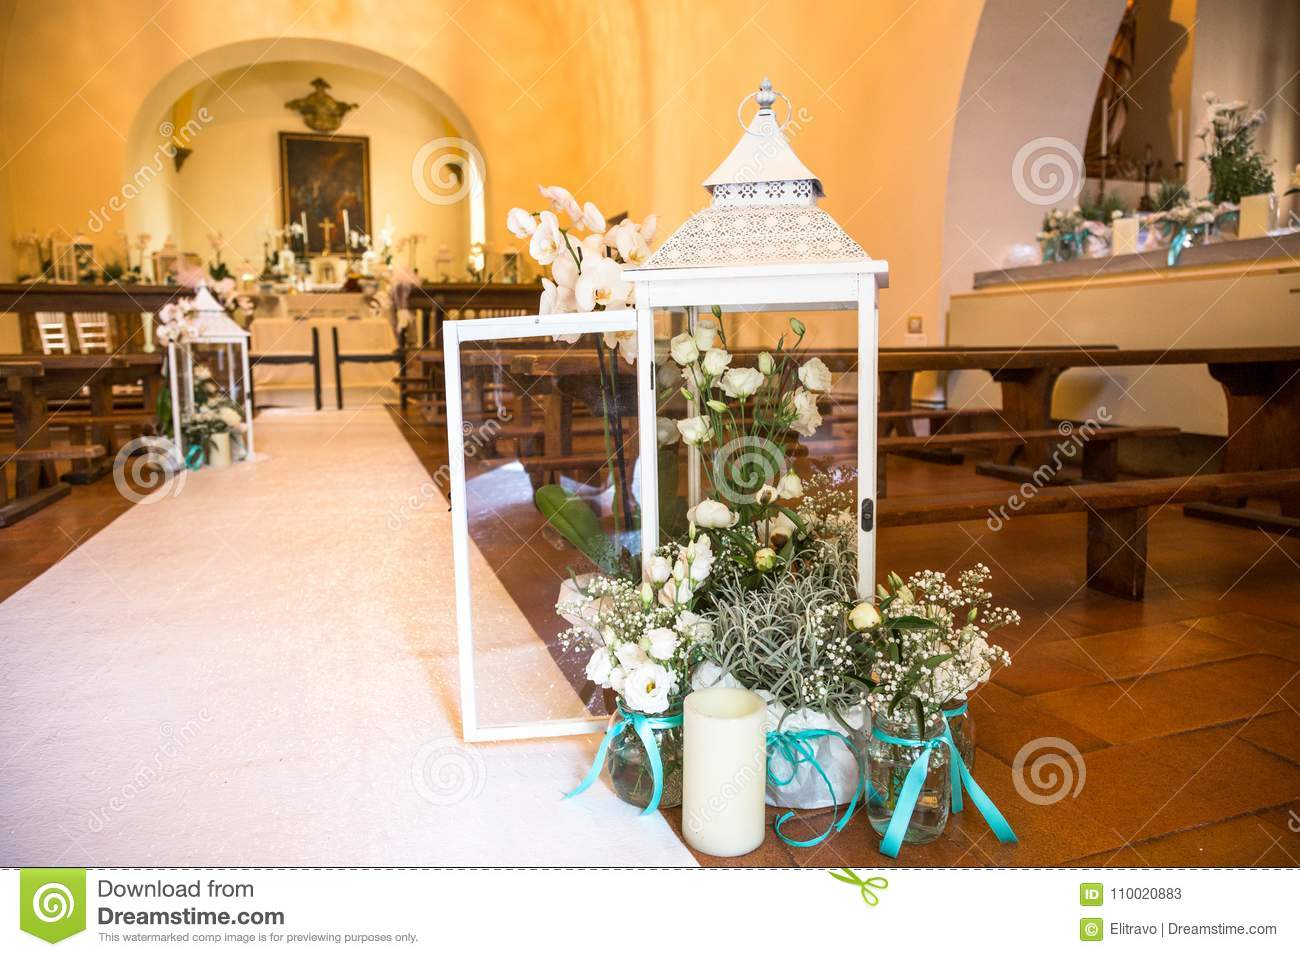 Wedding ceremony in the church stock image image of function download wedding ceremony in the church stock image image of function promise 110020883 junglespirit Choice Image